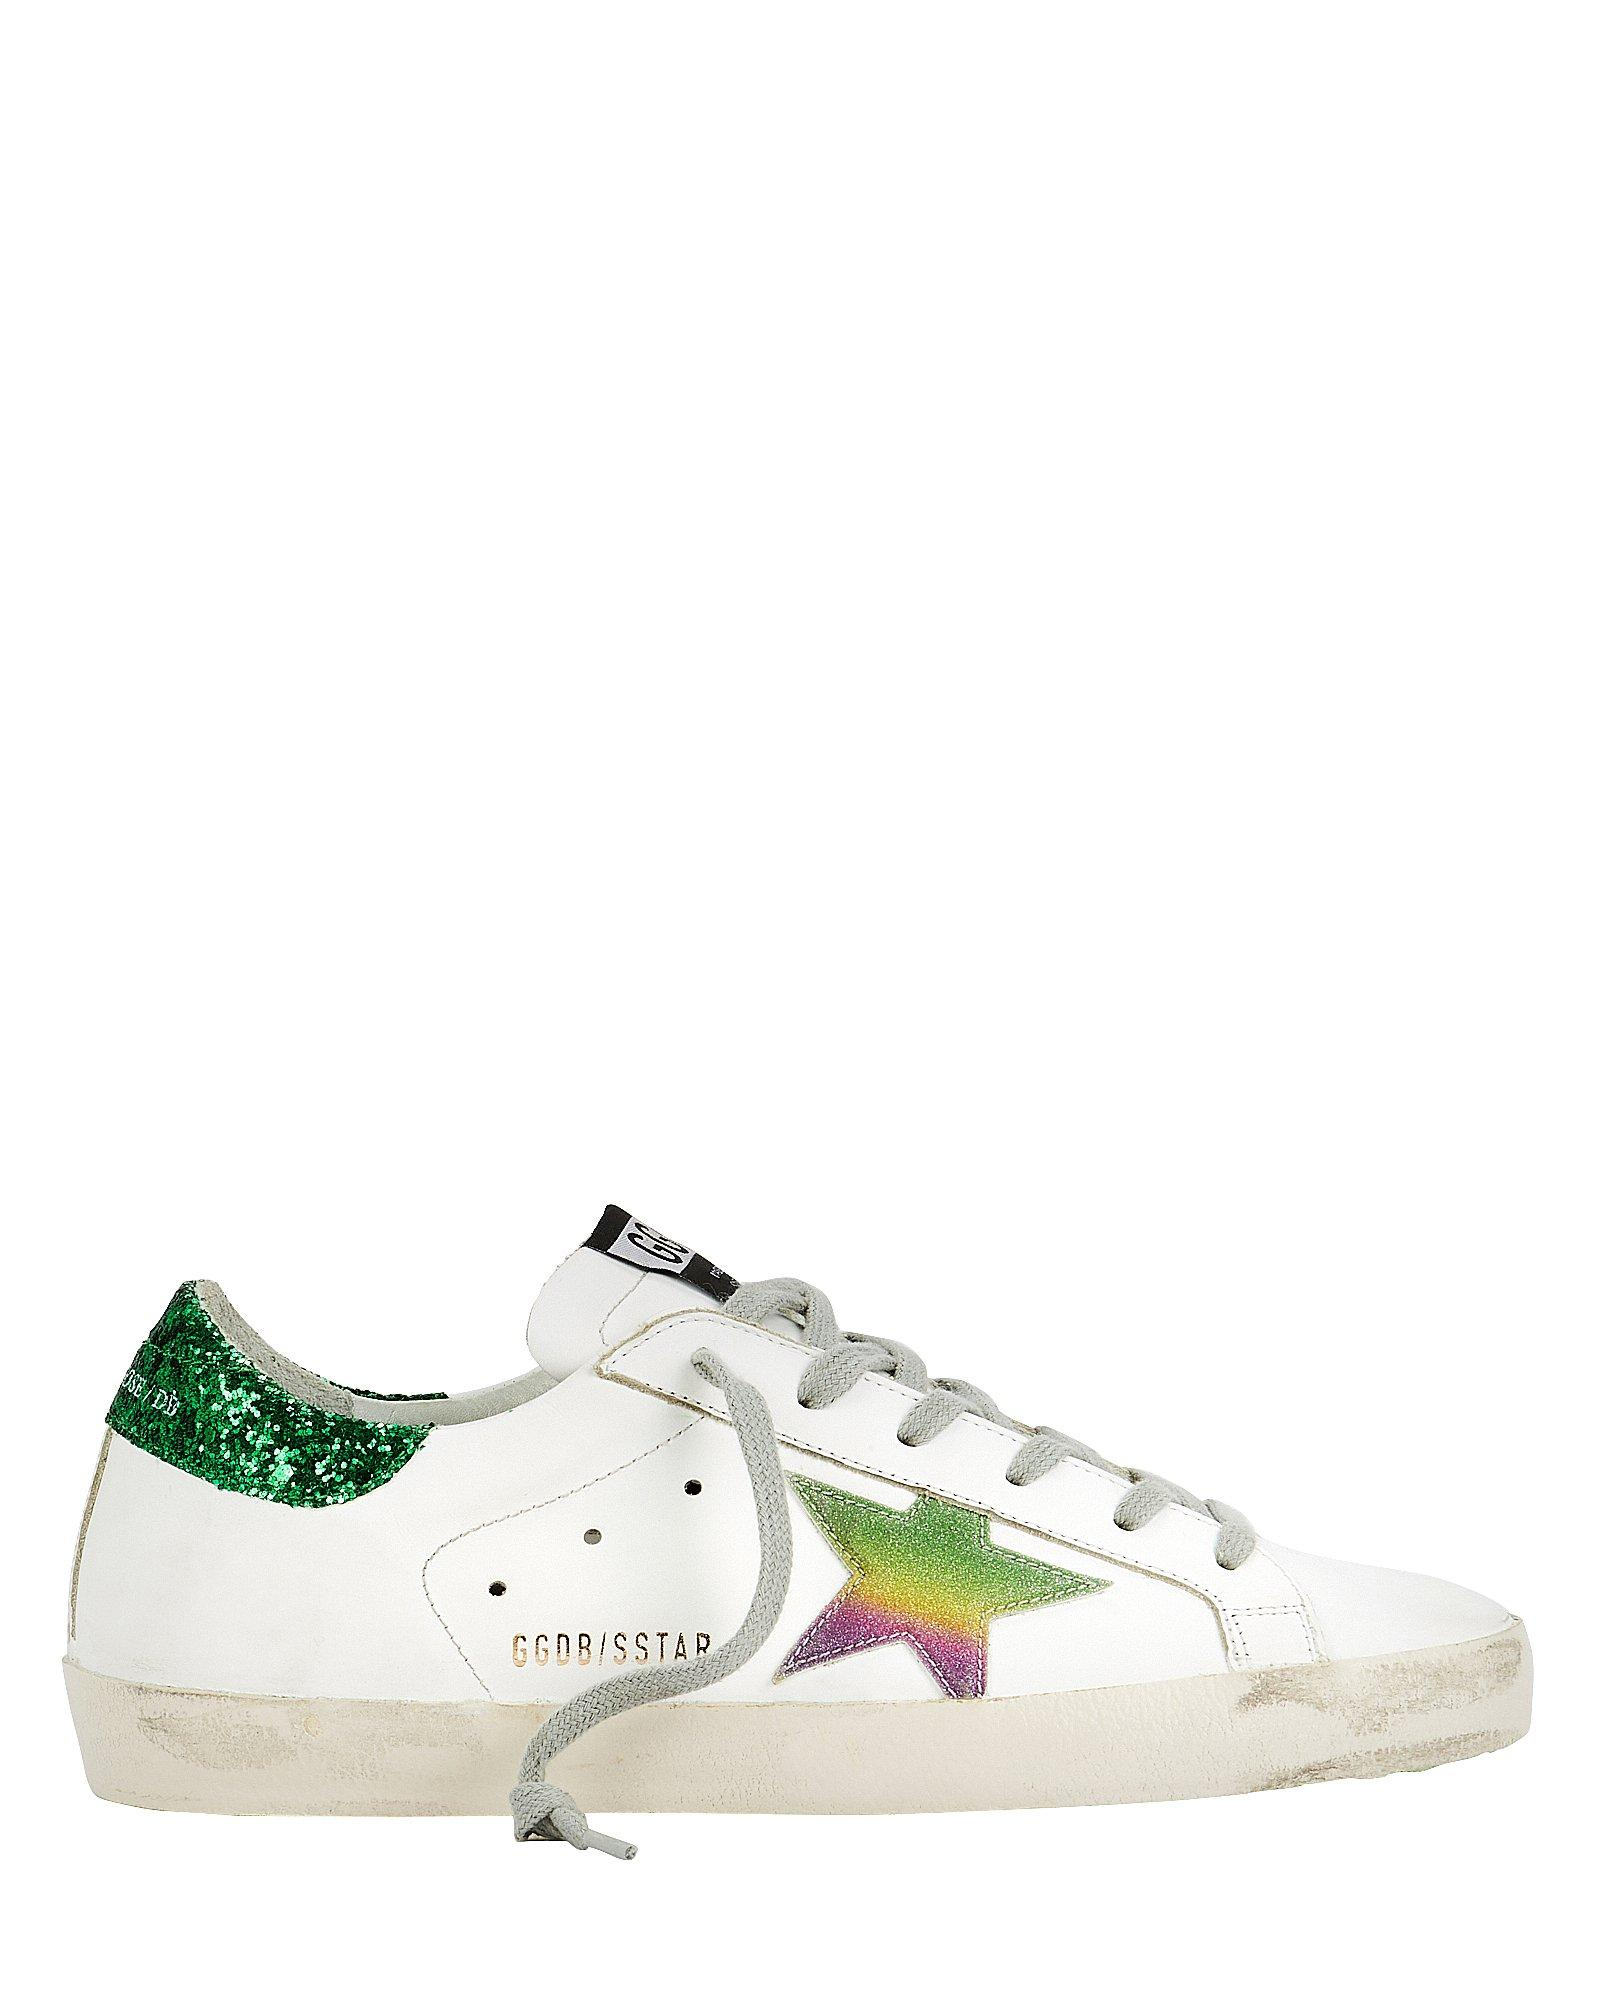 e2f16a51c0f Lyst - Golden Goose Deluxe Brand Superstar Green Glitter Back Low ...